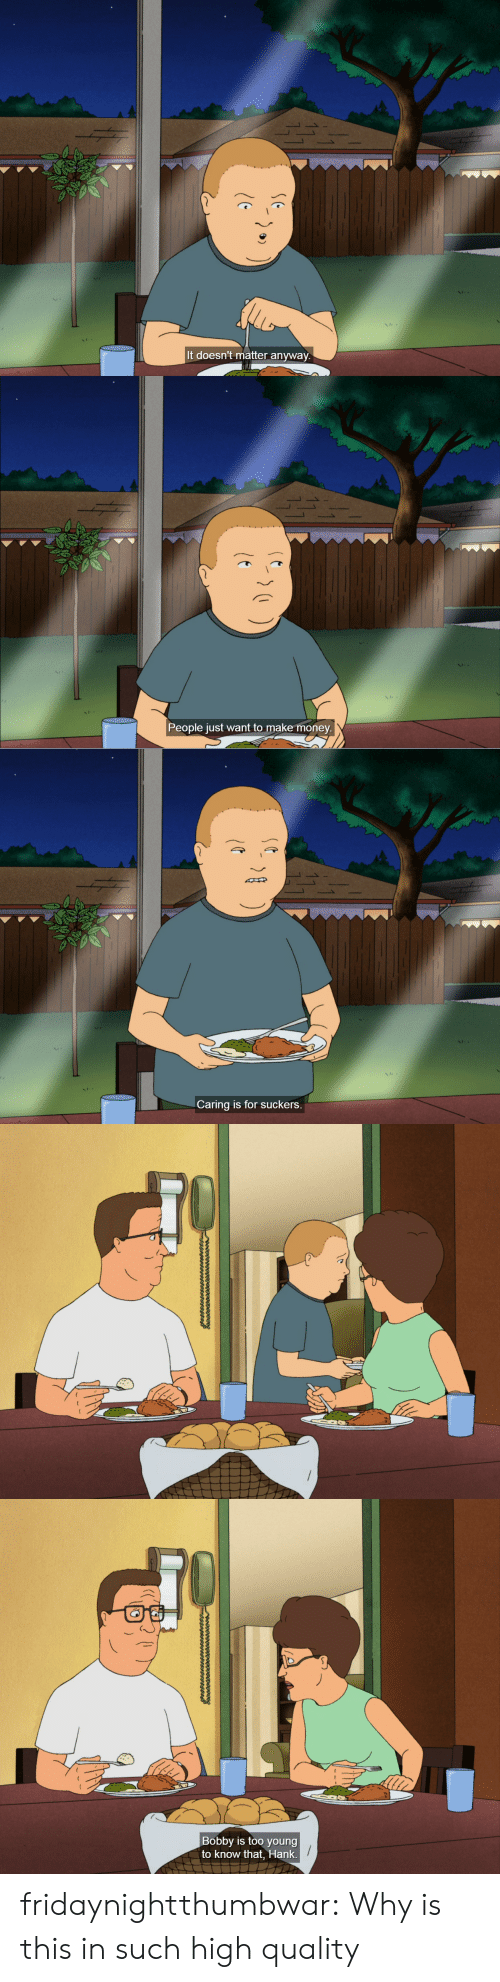 Hank: S 1  It doesn't matter anyway   People just want to make money.   Caring is for suckers.   Bobby is too young  to know that, Hank fridaynightthumbwar: Why is this in such high quality